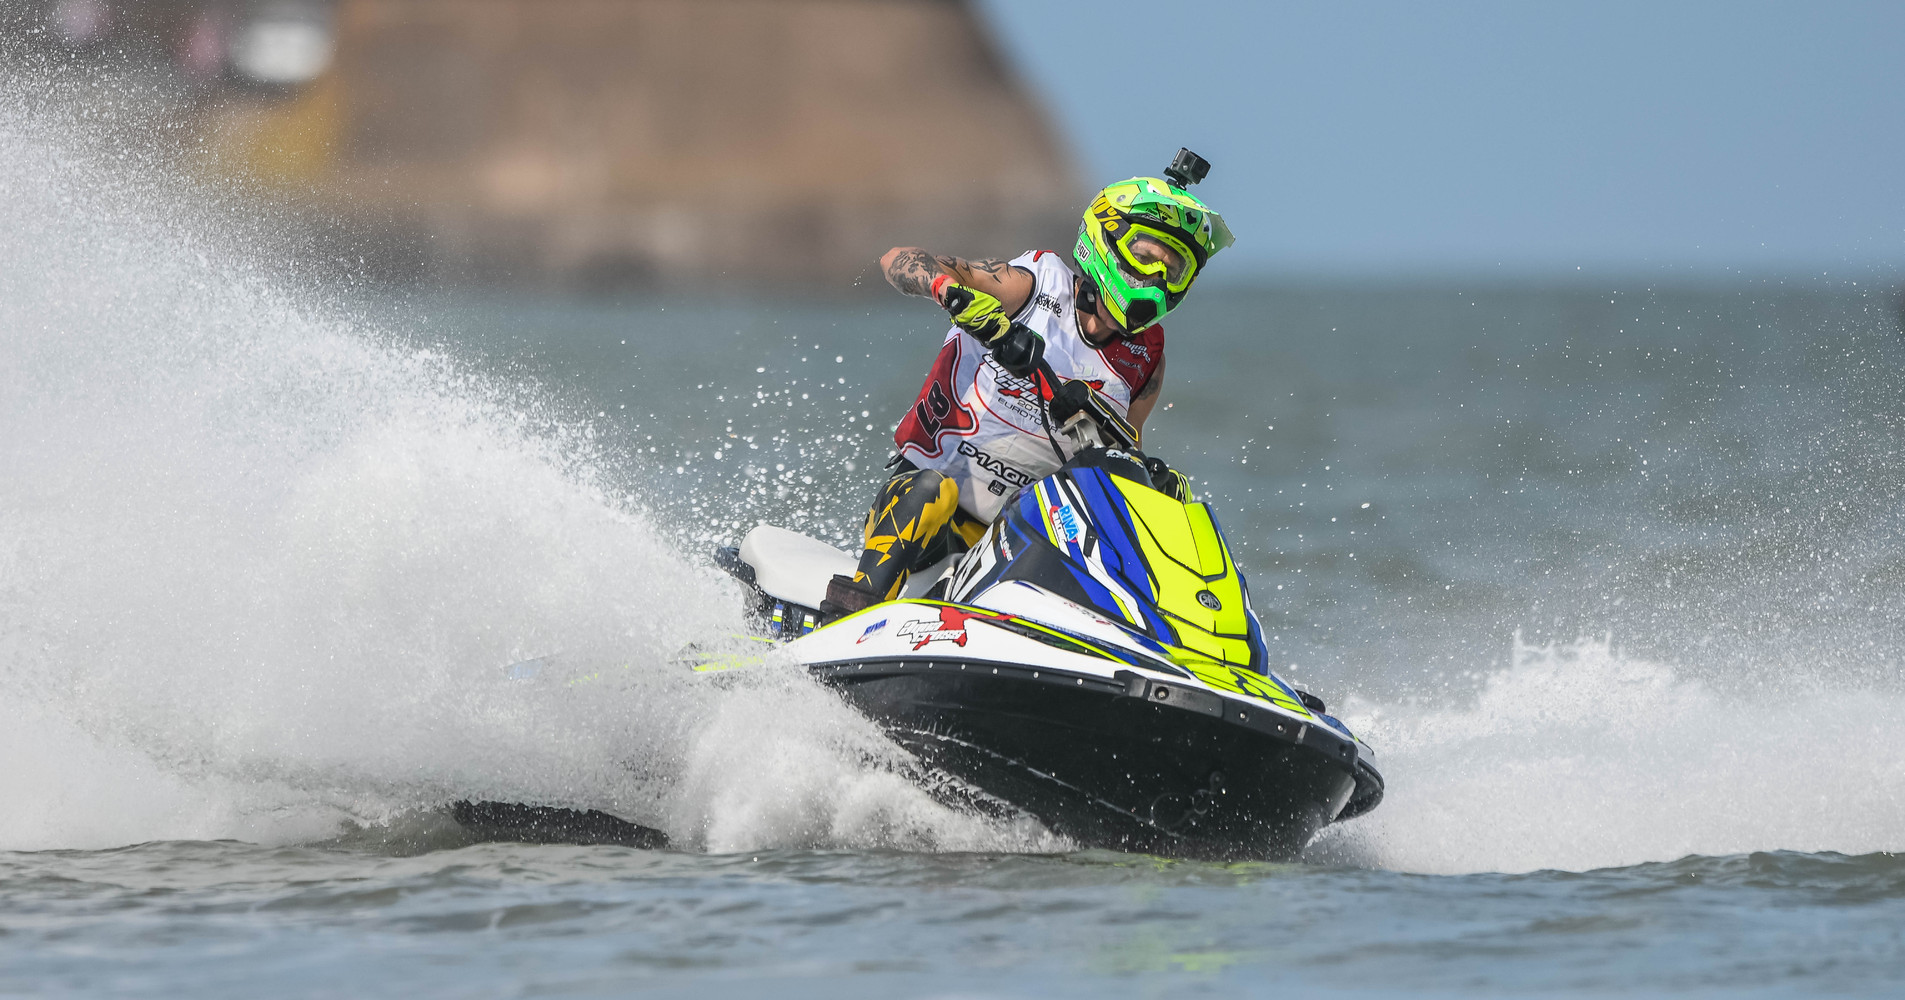 Yamaha EX qualifies to race in the Sprint ES (Spark/EX) class